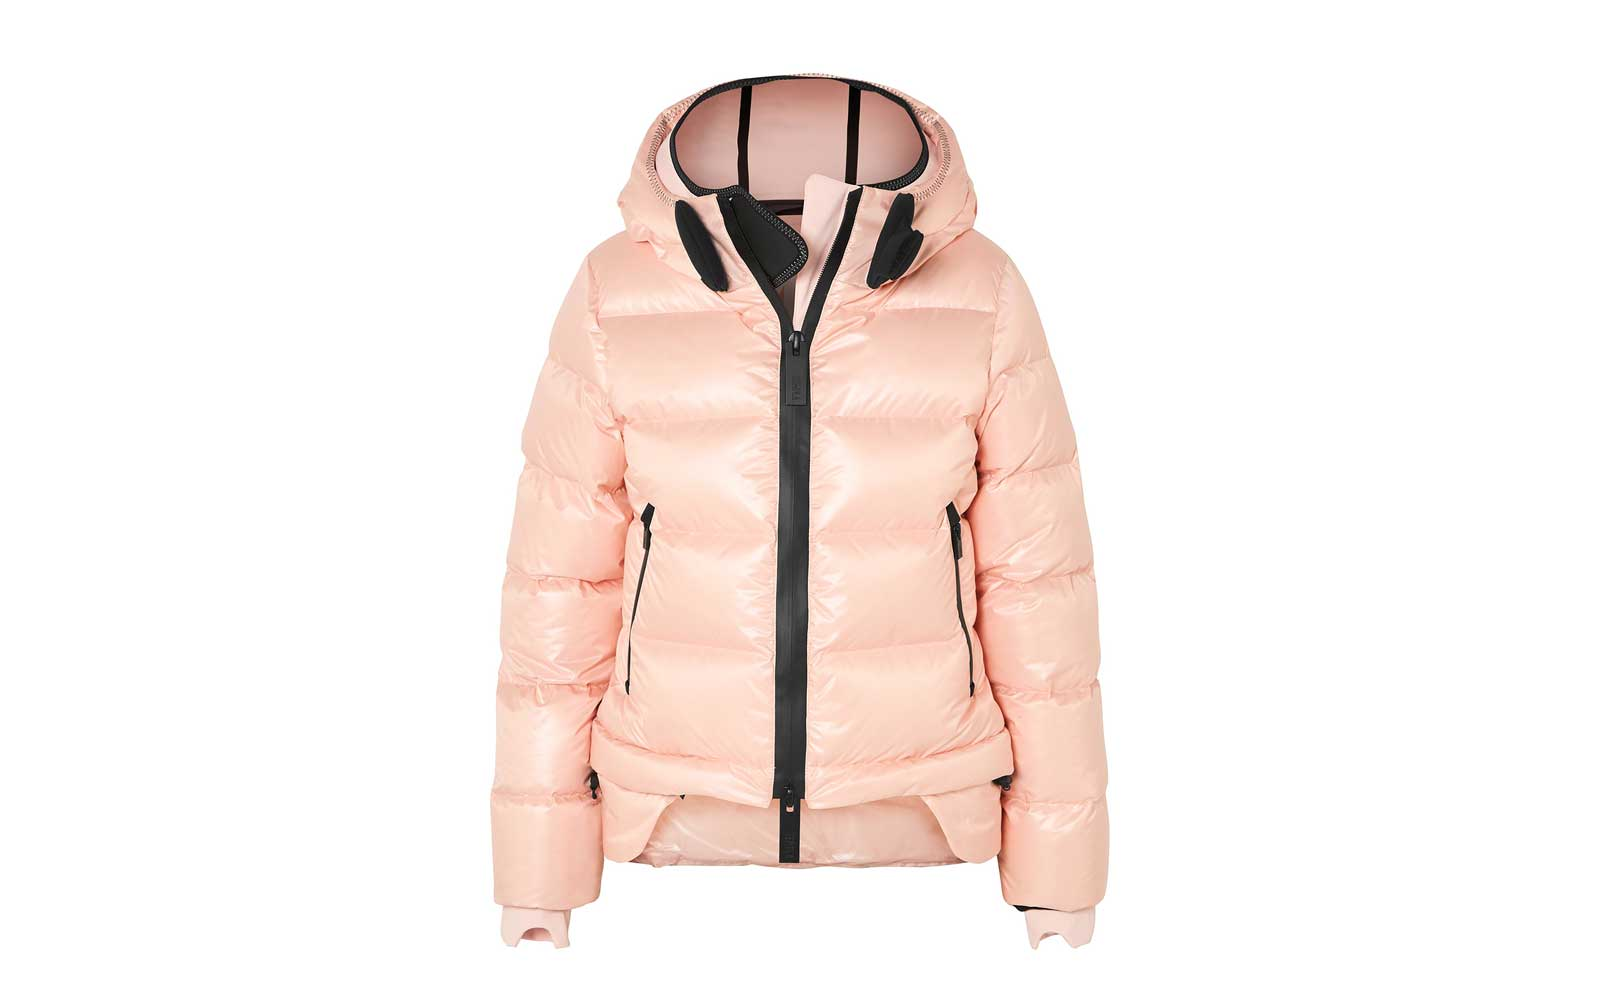 Templa Winter Outerwear